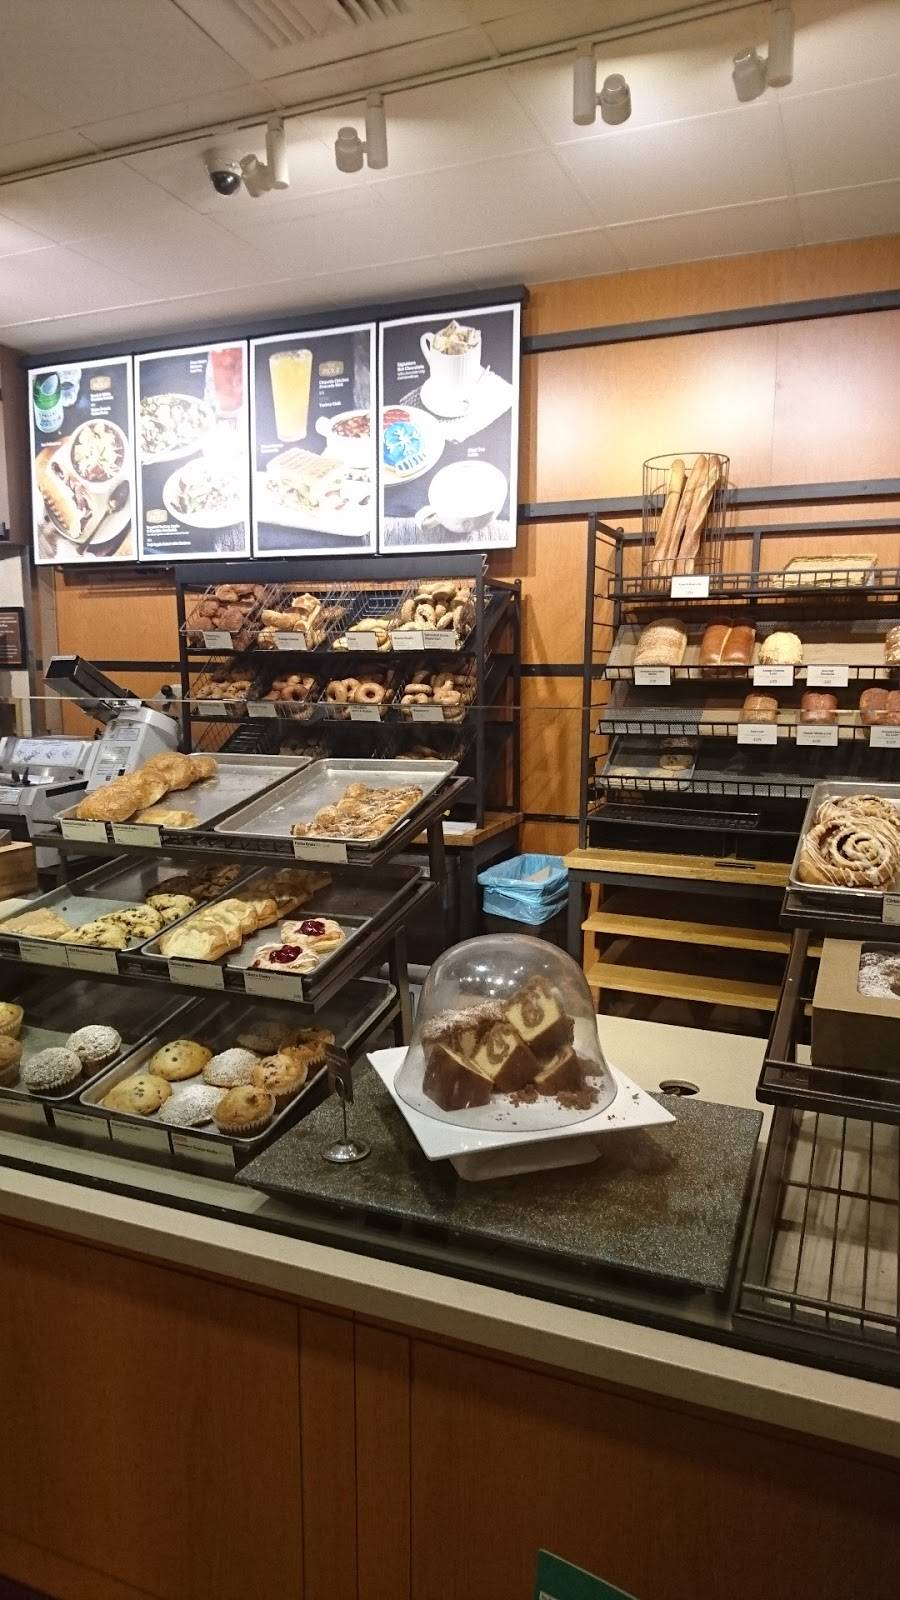 Panera Bread | cafe | 8131 Calumet Ave, Munster, IN 46321, USA | 2198366485 OR +1 219-836-6485